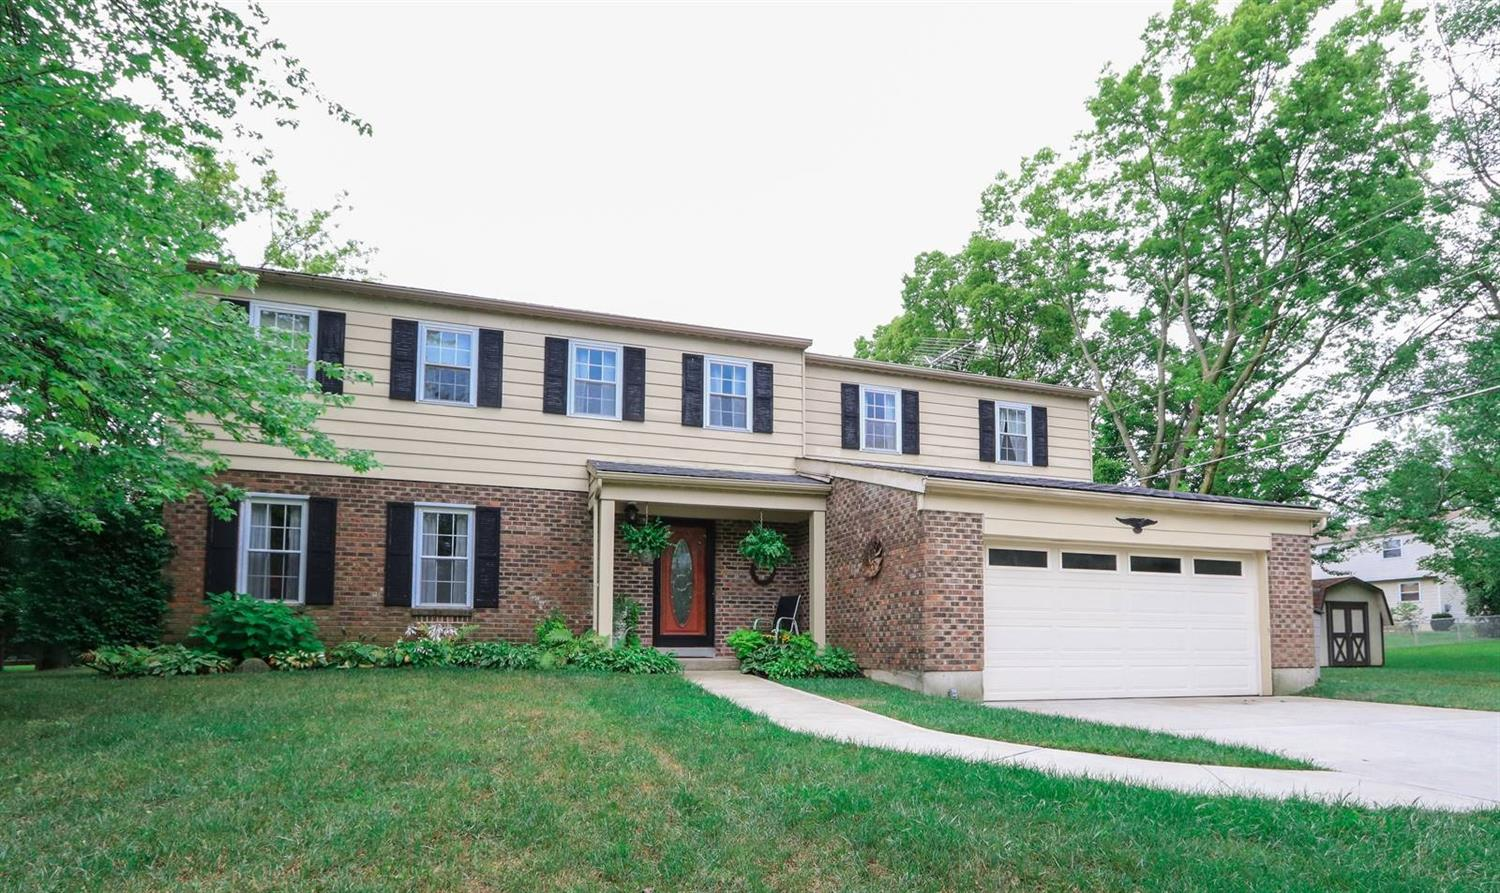 Property for sale at 6605 Coachlight Way, West Chester,  Ohio 45069